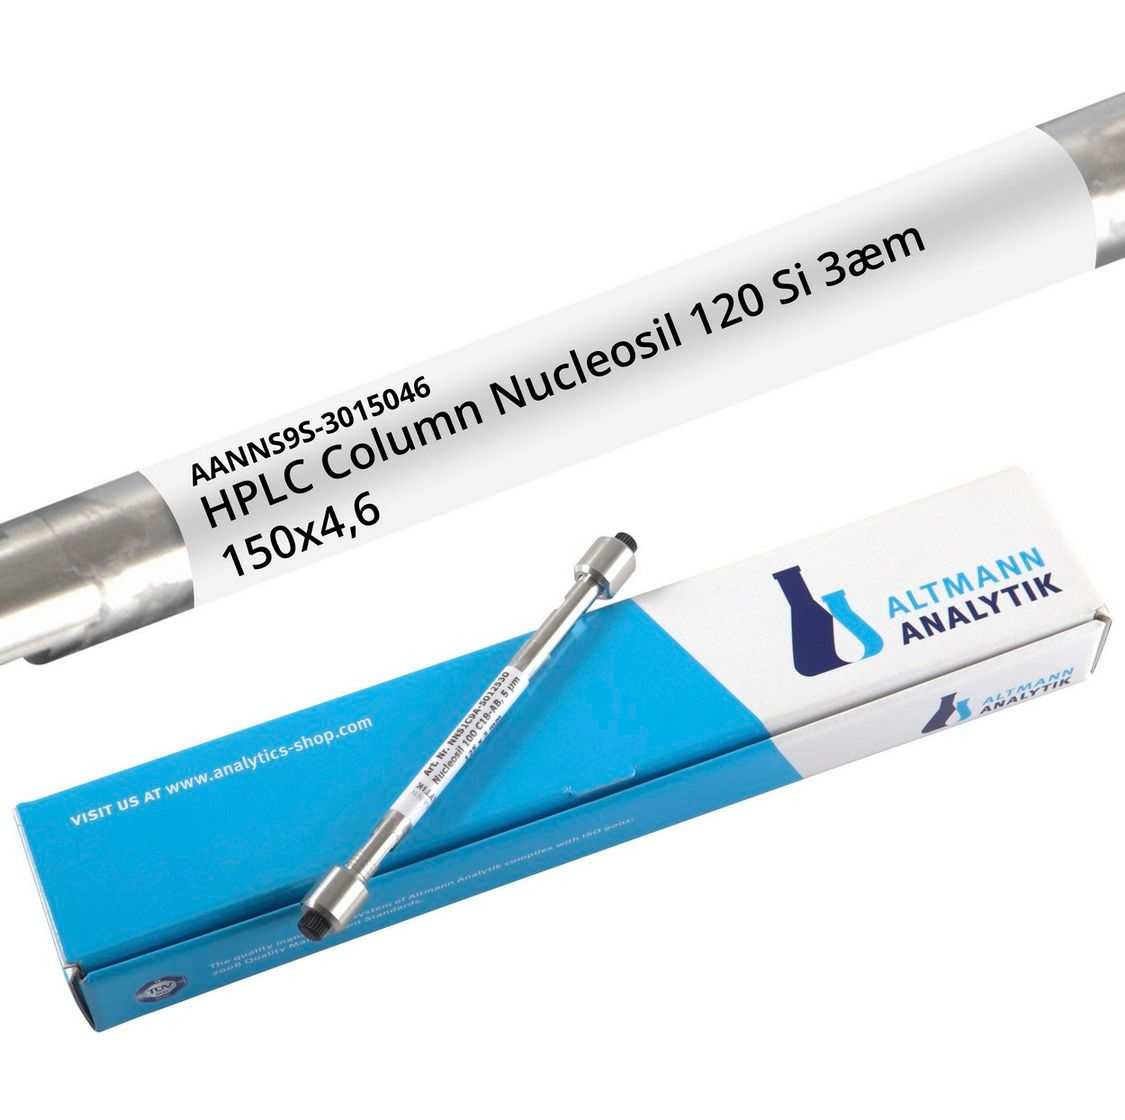 HPLC Column Nucleosil 120 Si 3µm 150x4,6 mm, 120A